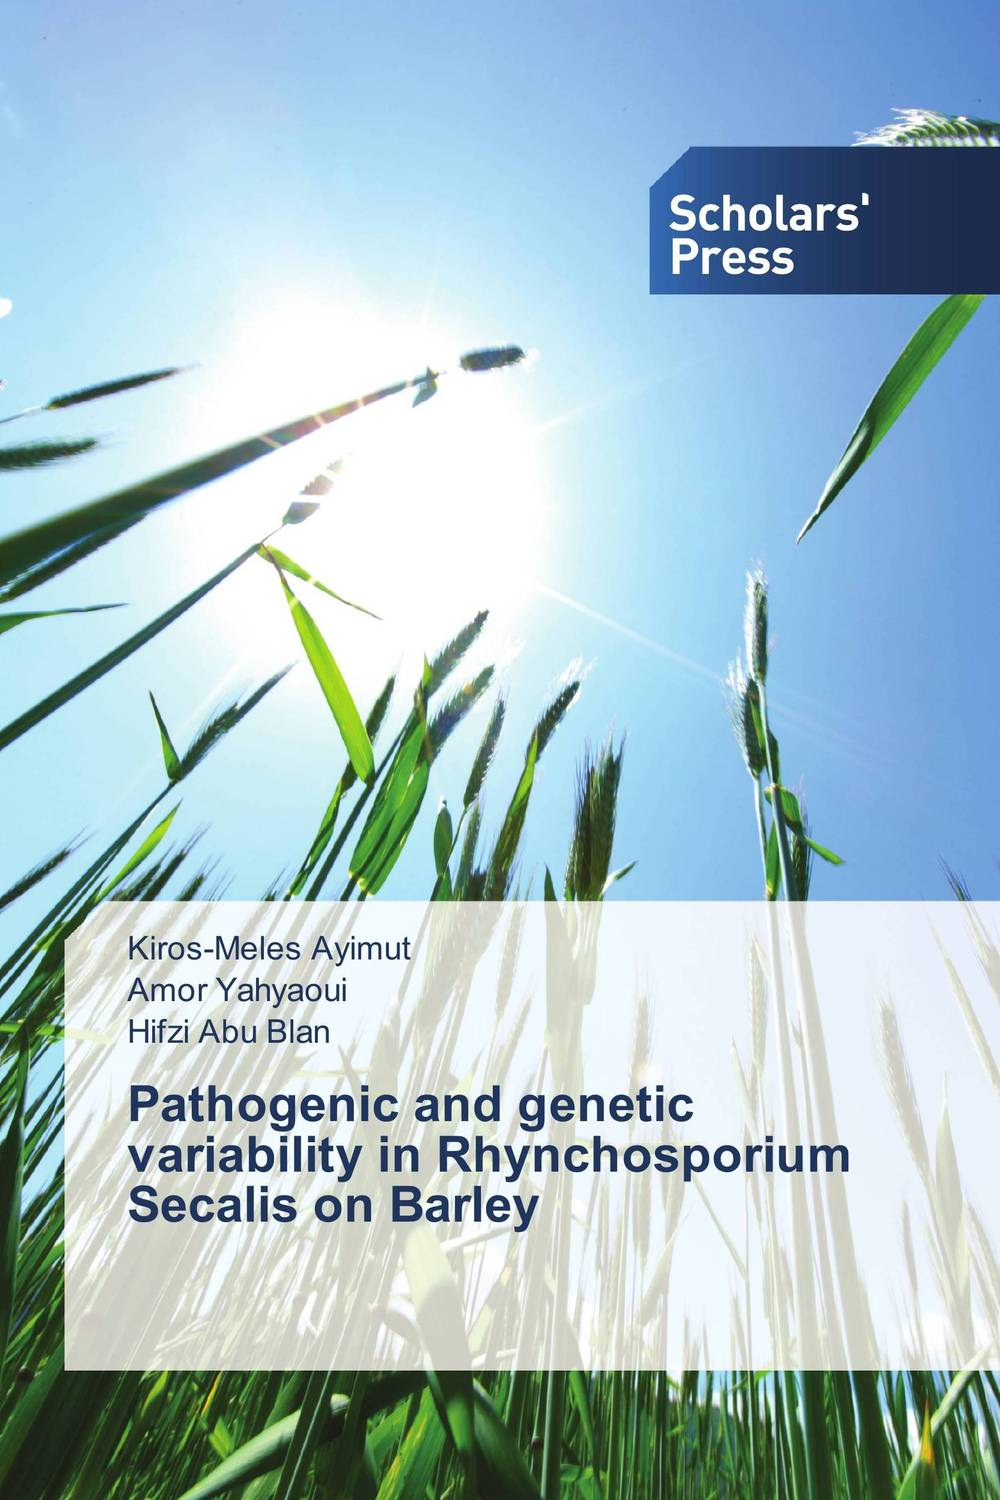 Pathogenic and genetic variability in Rhynchosporium Secalis on Barley butterflies in the barley